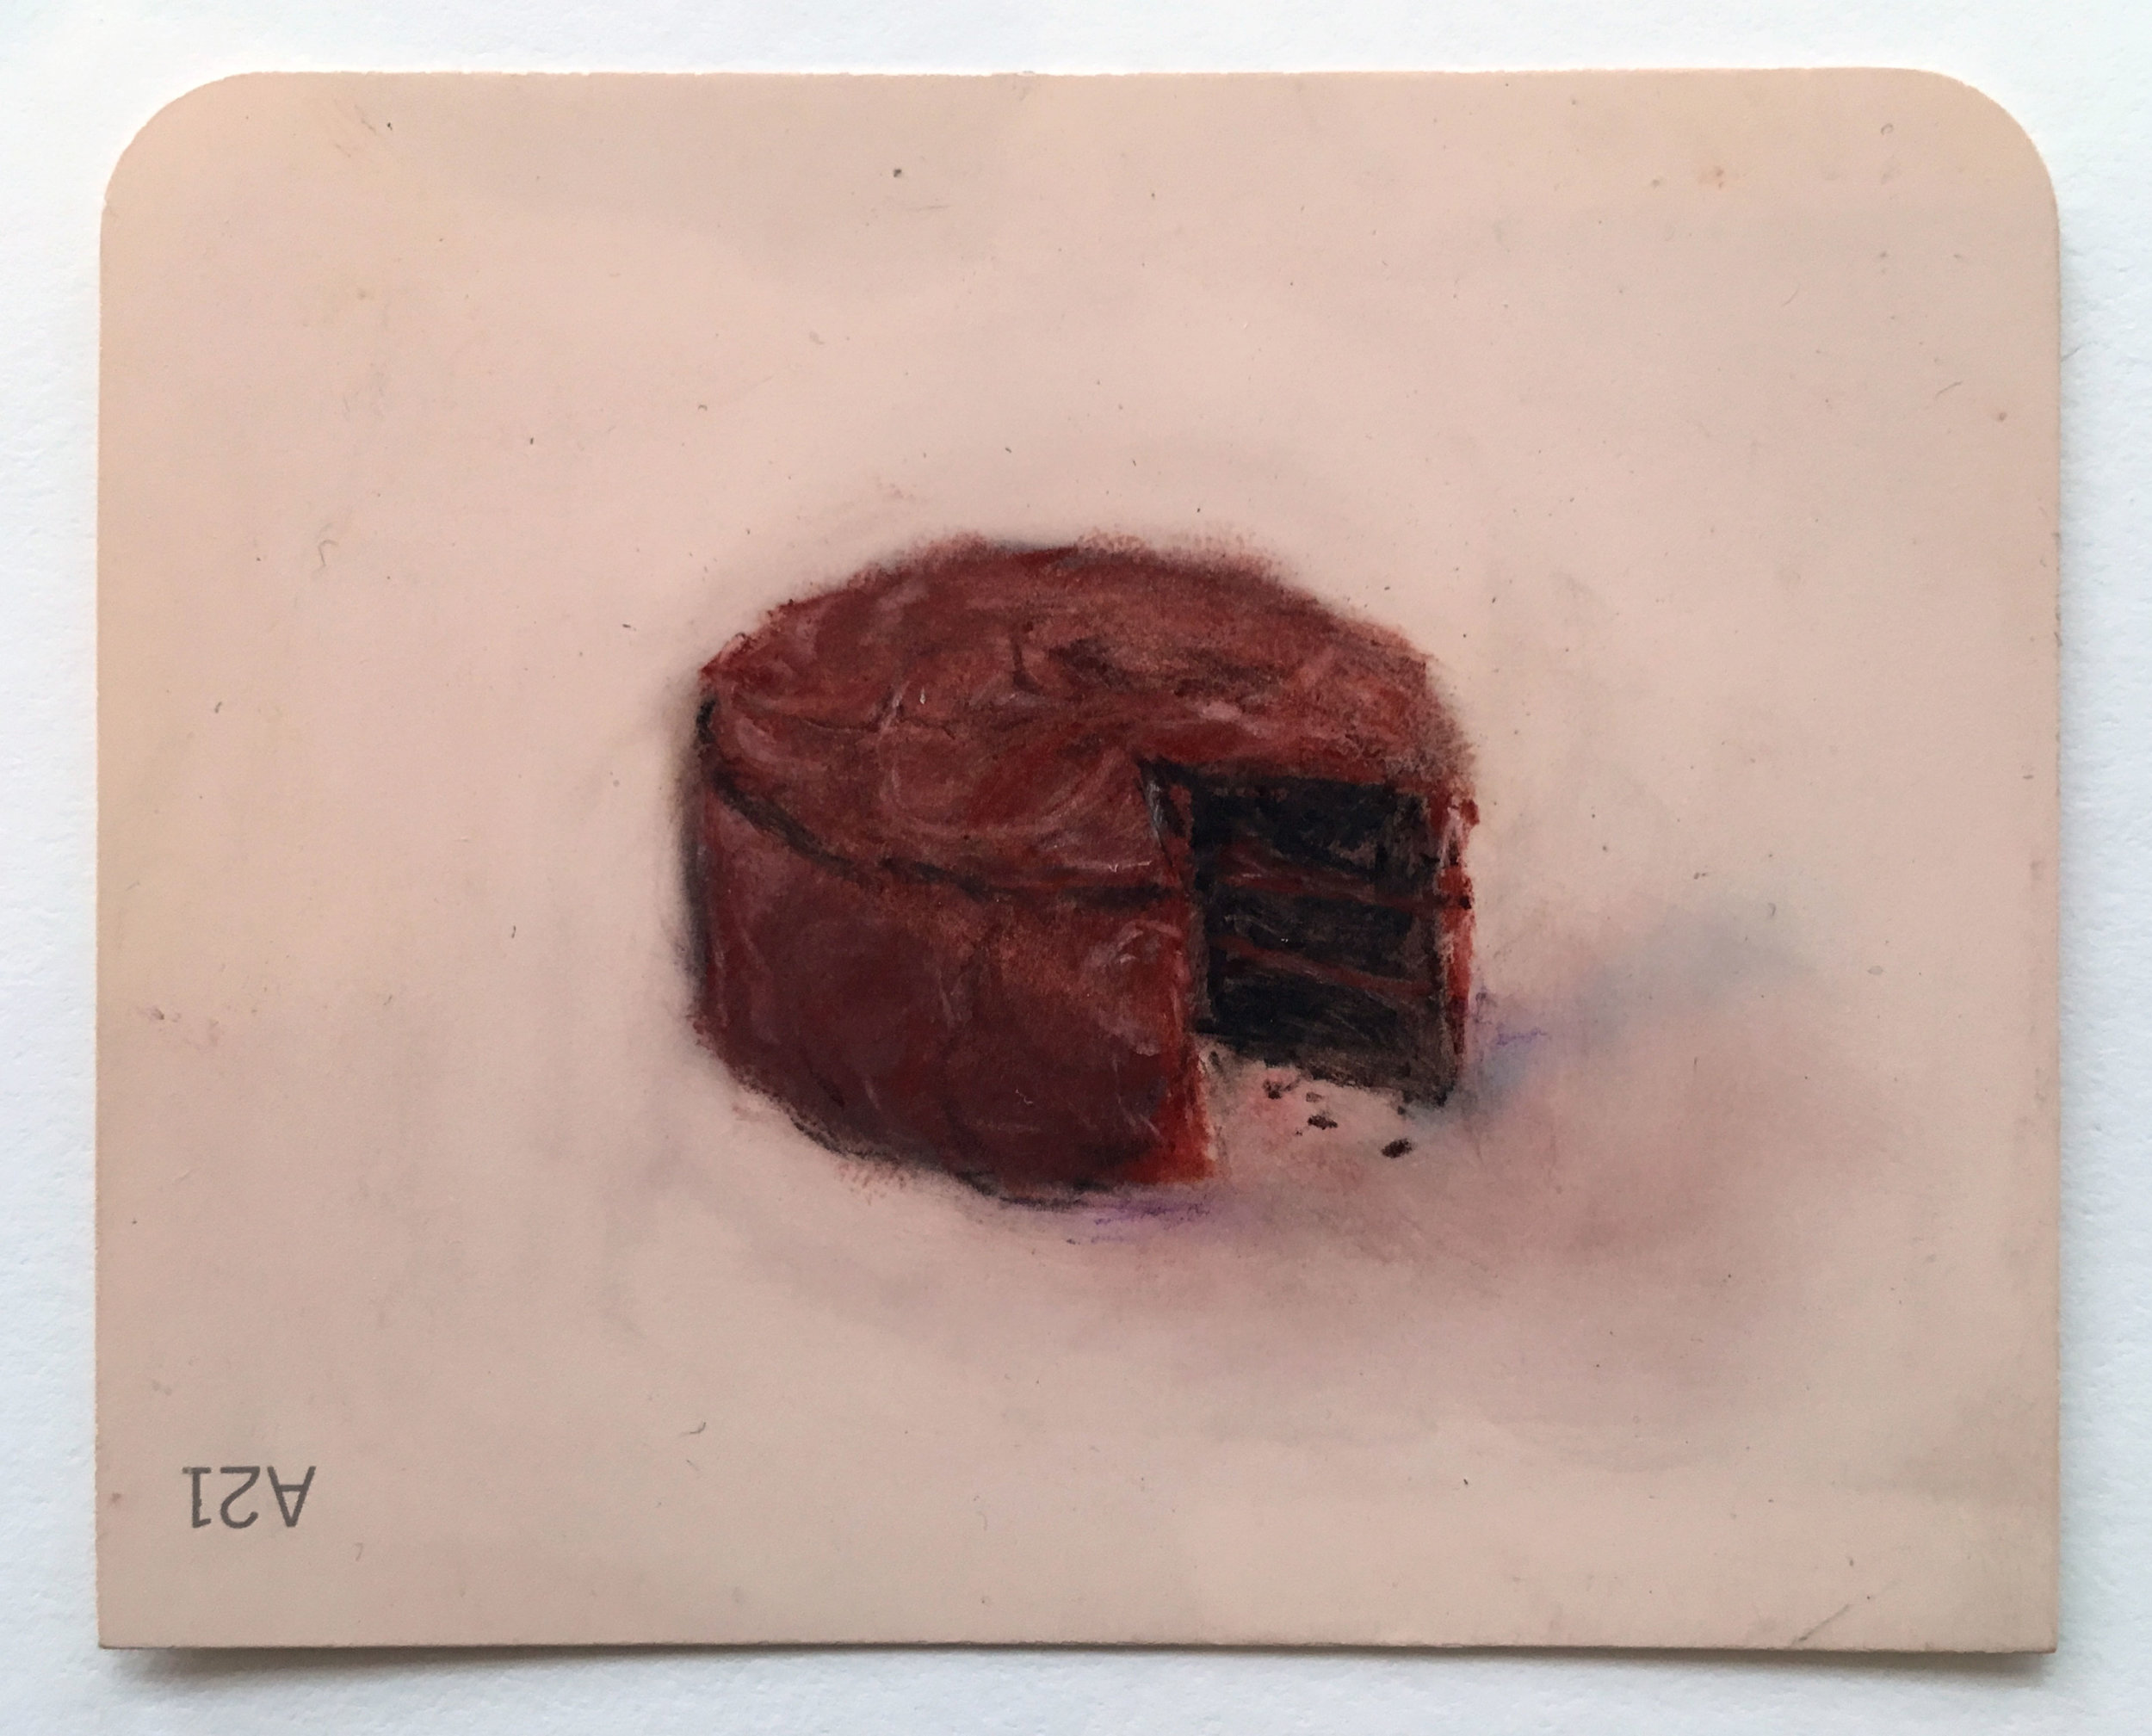 Mie Yim,  Chocolate Cake , 2015, Pastel on Martha Stewart Paintchip, 3 x 4 inches